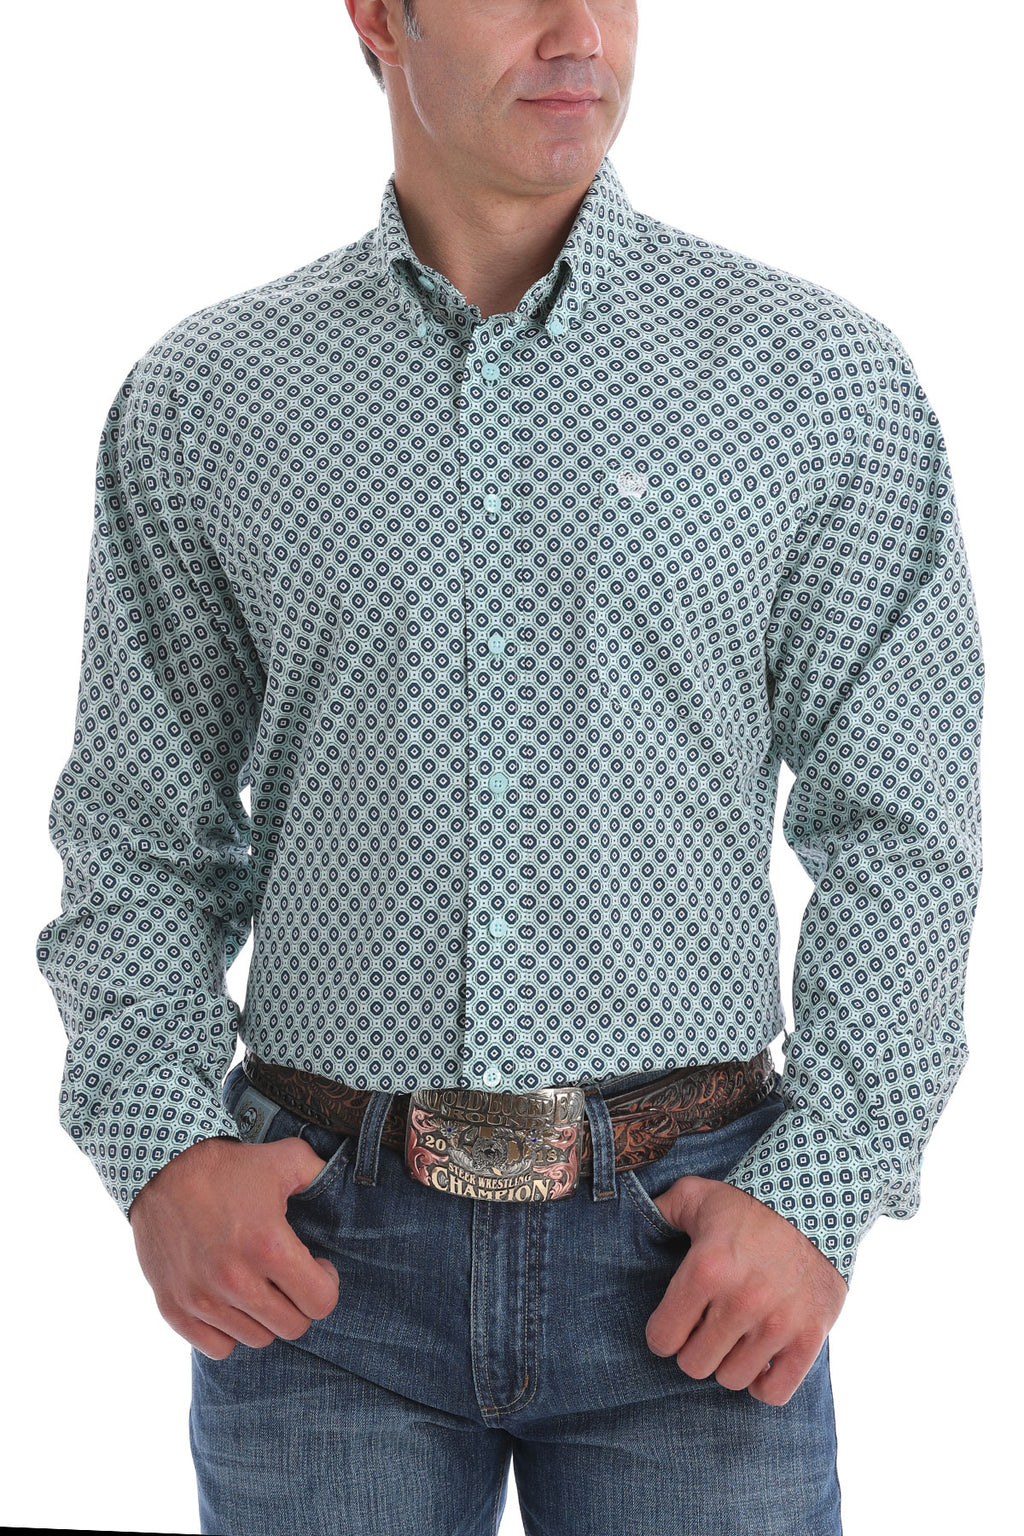 CINCH Men's Light Blue and Navy Medallion Pattern Button Down - The Tillie Rose Boutique